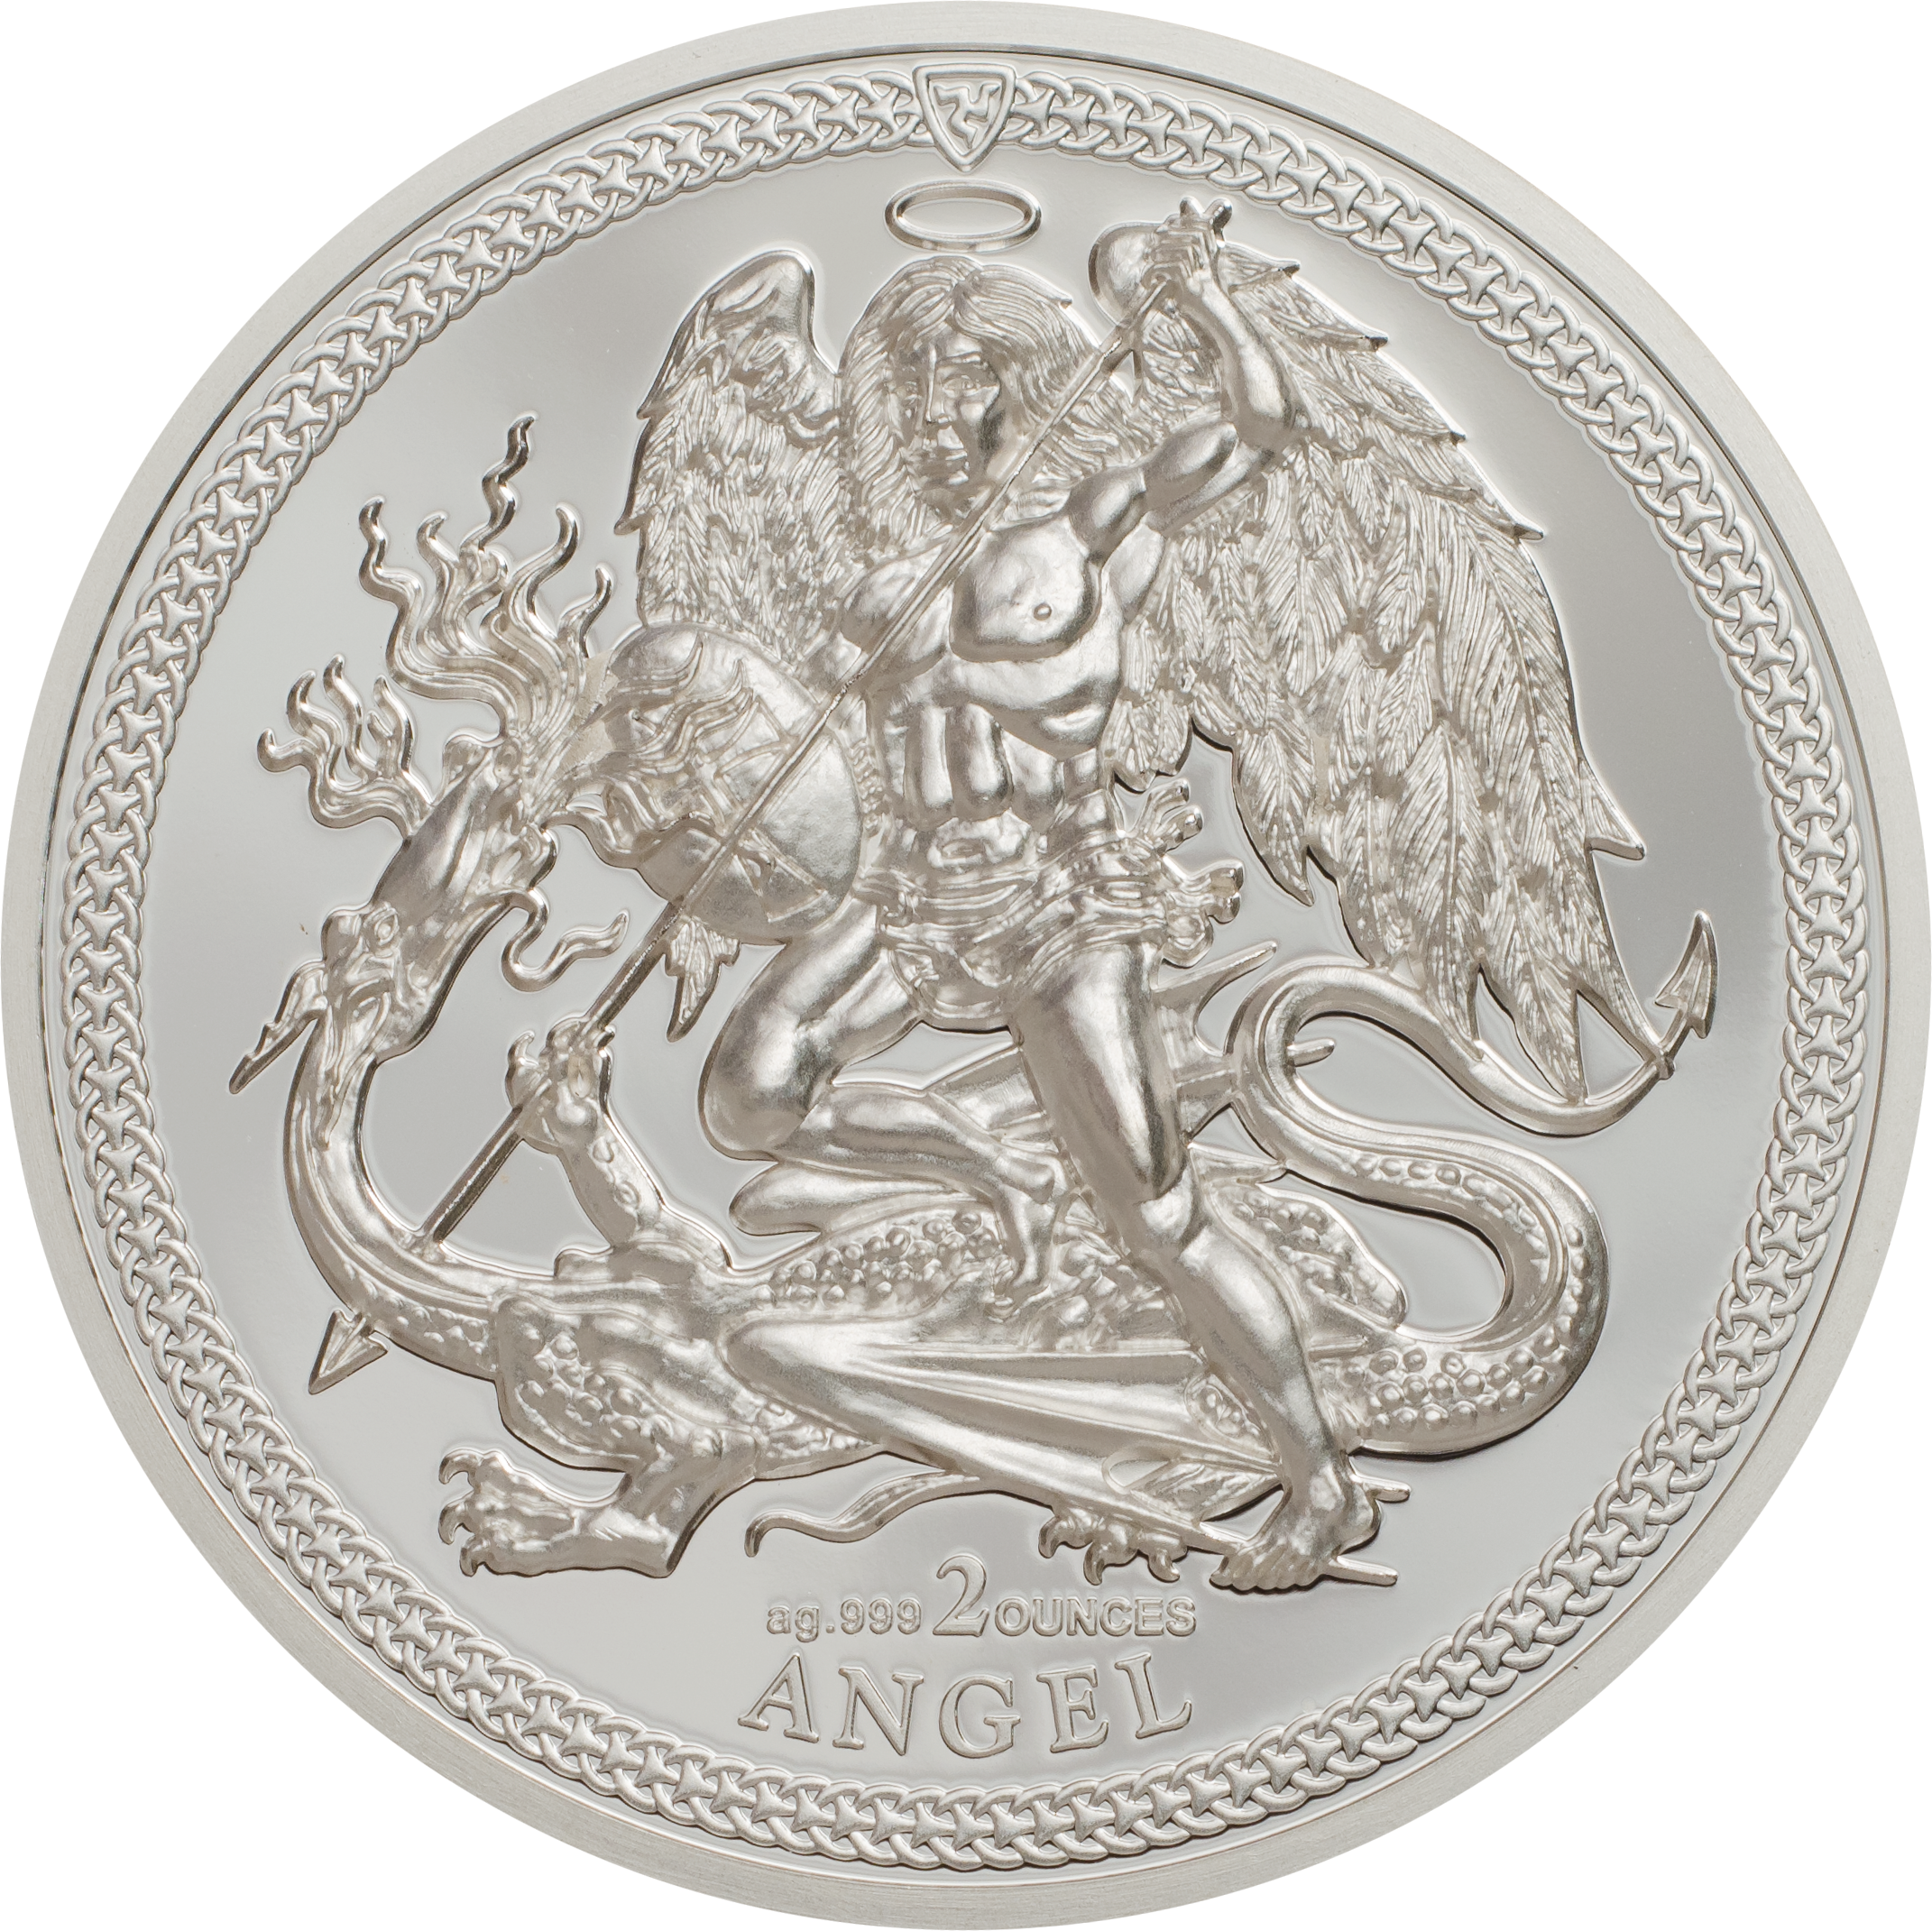 one angel piedfort silver coin with smartminting